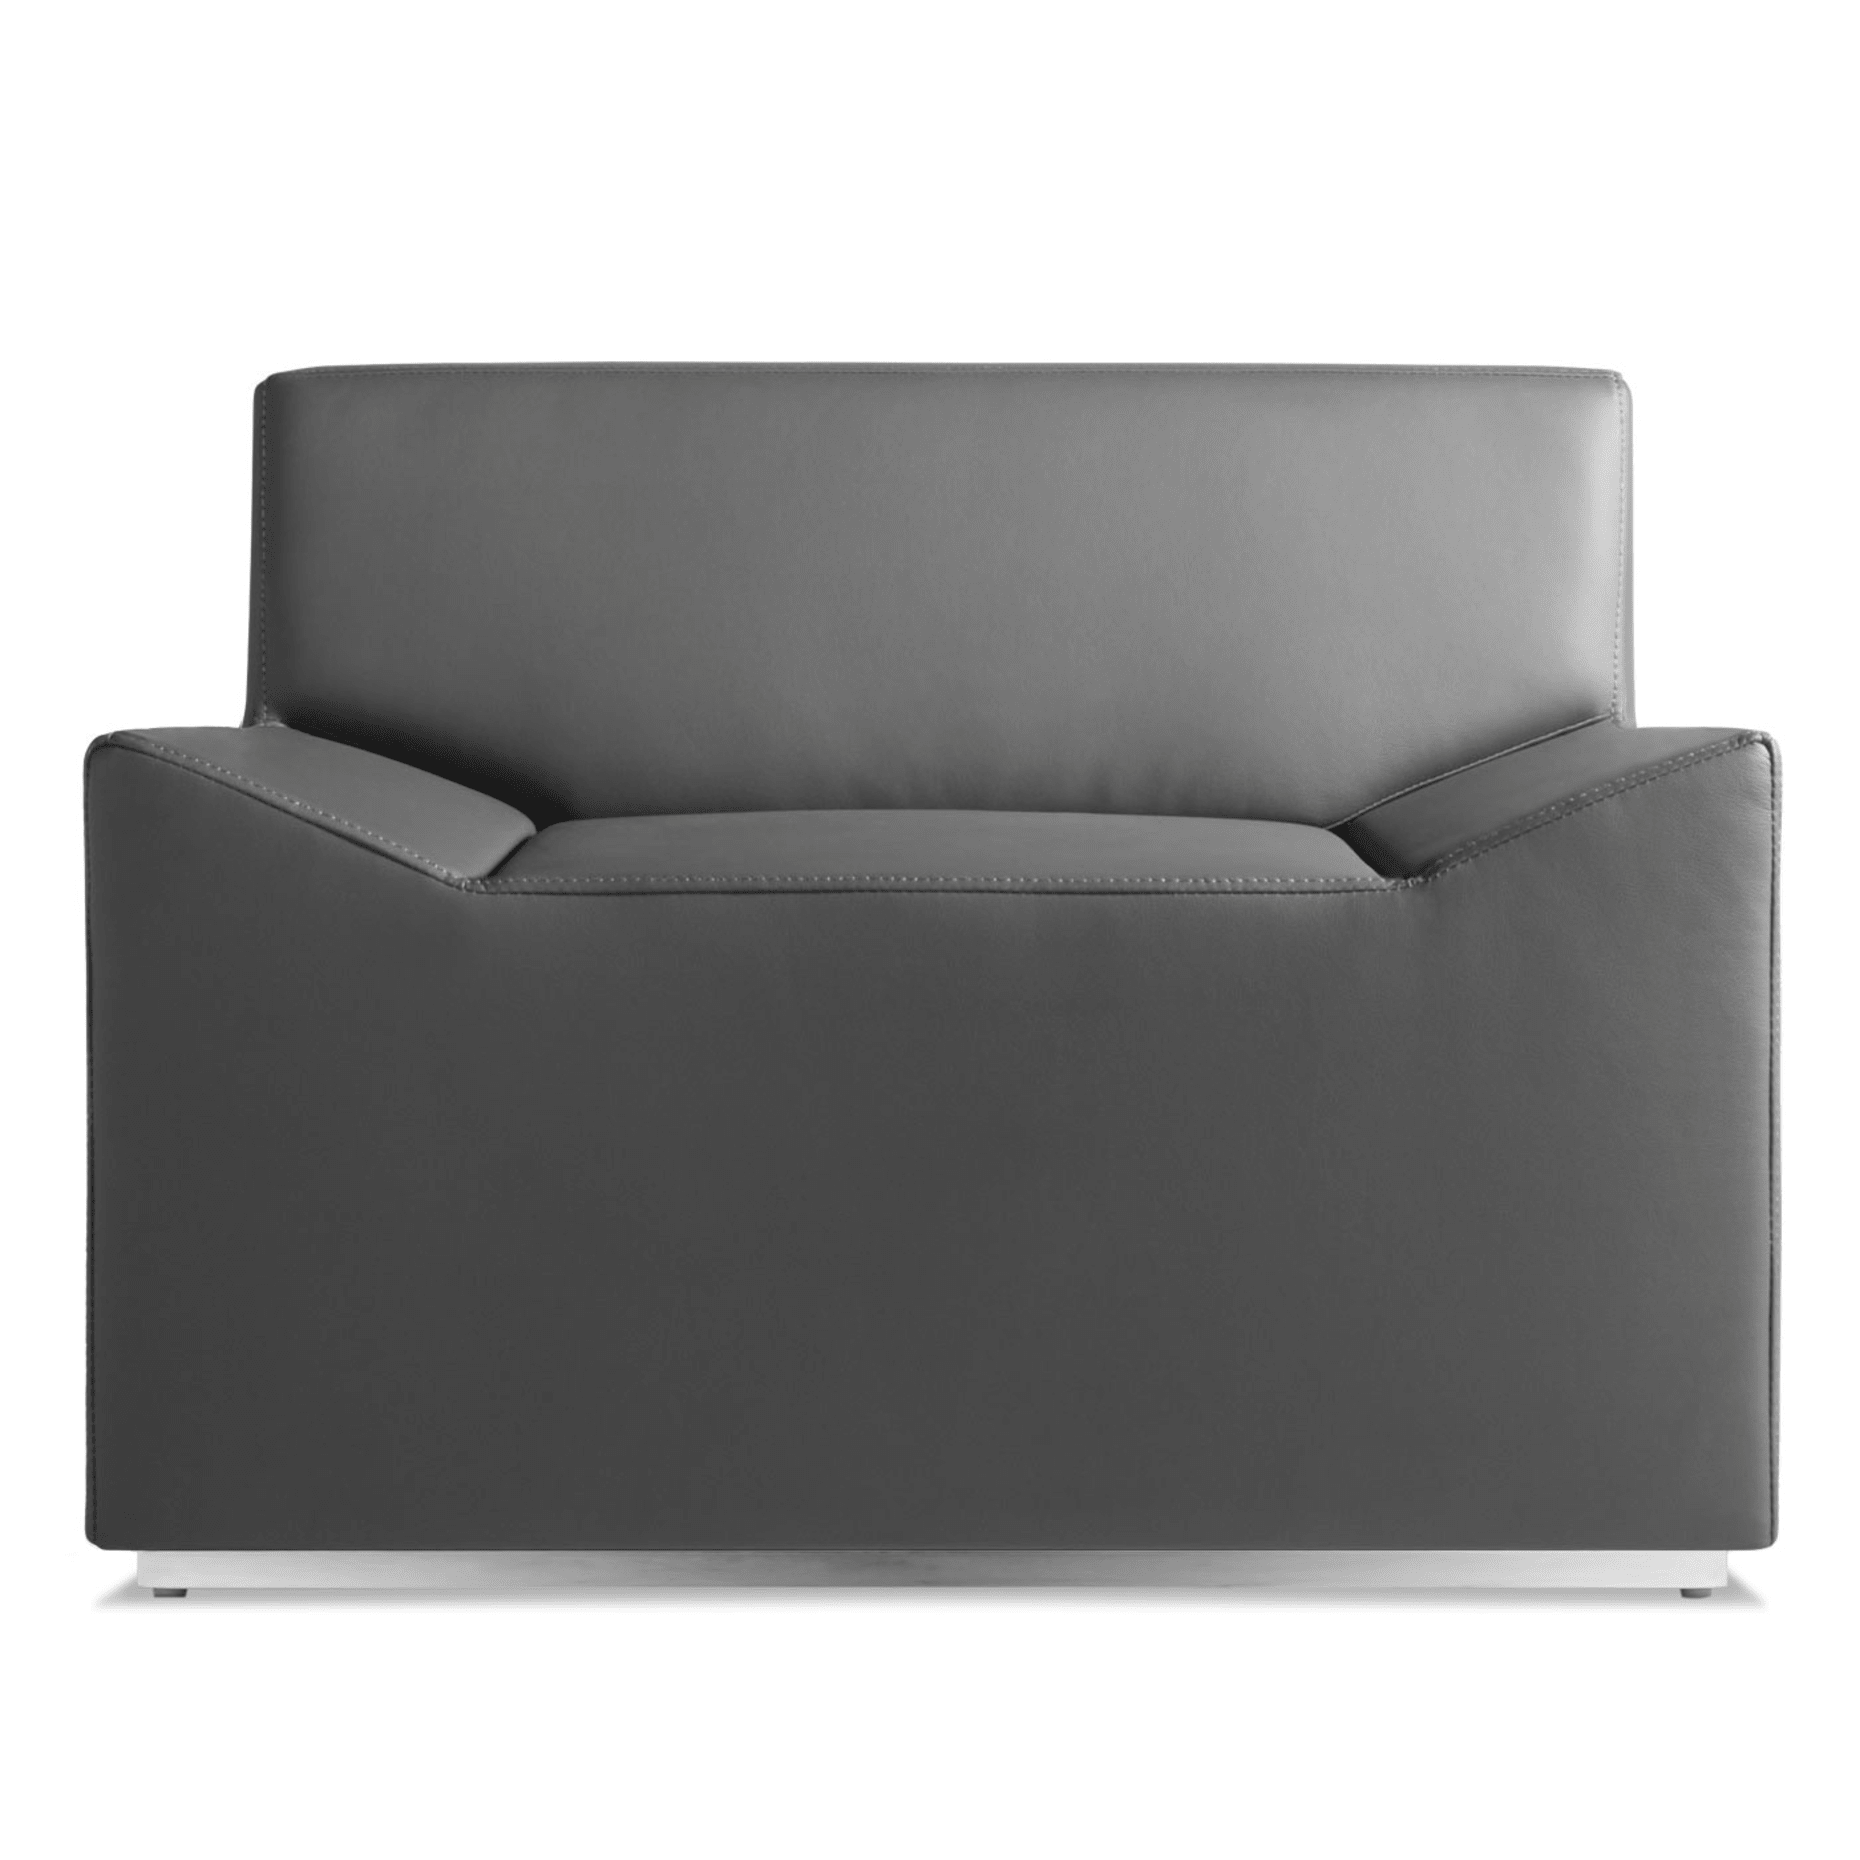 co1 lounge gy couchoid lounge chair slate